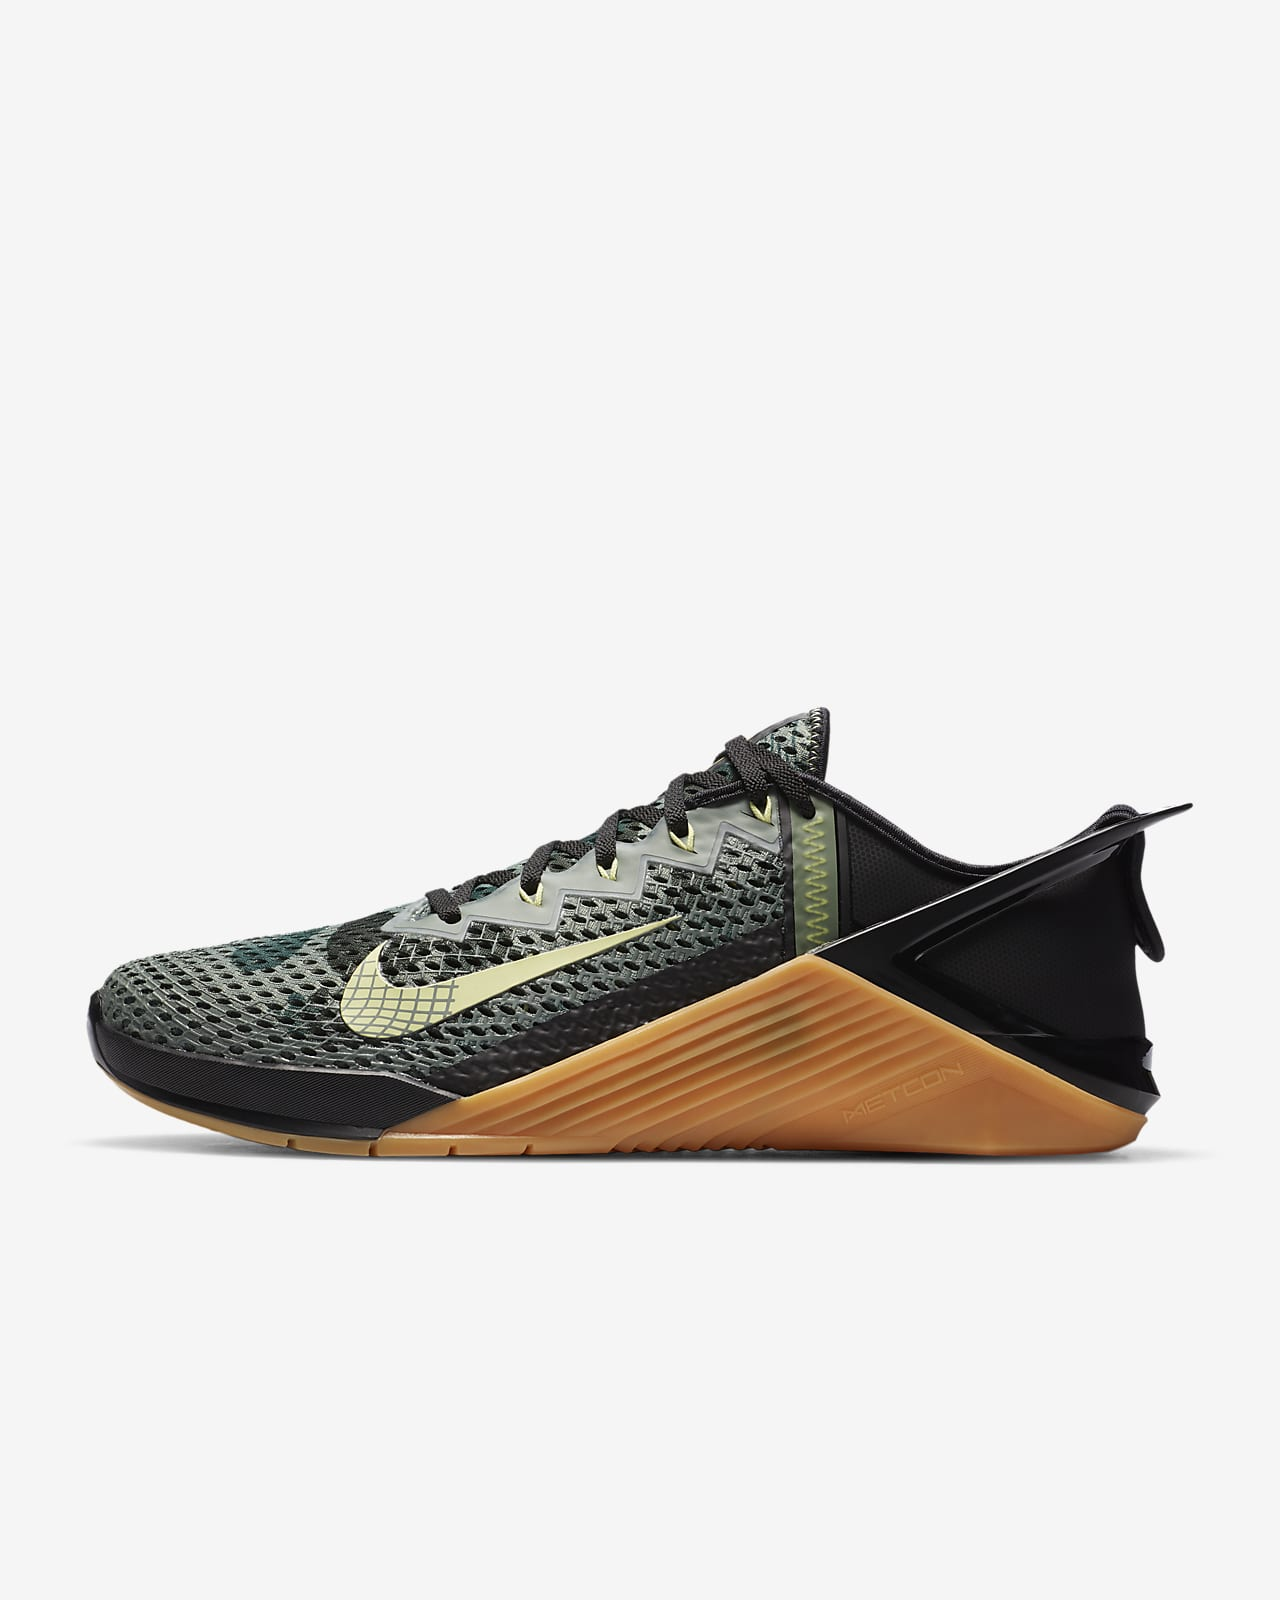 Chaussure de training Nike Metcon 6 FlyEase pour Homme